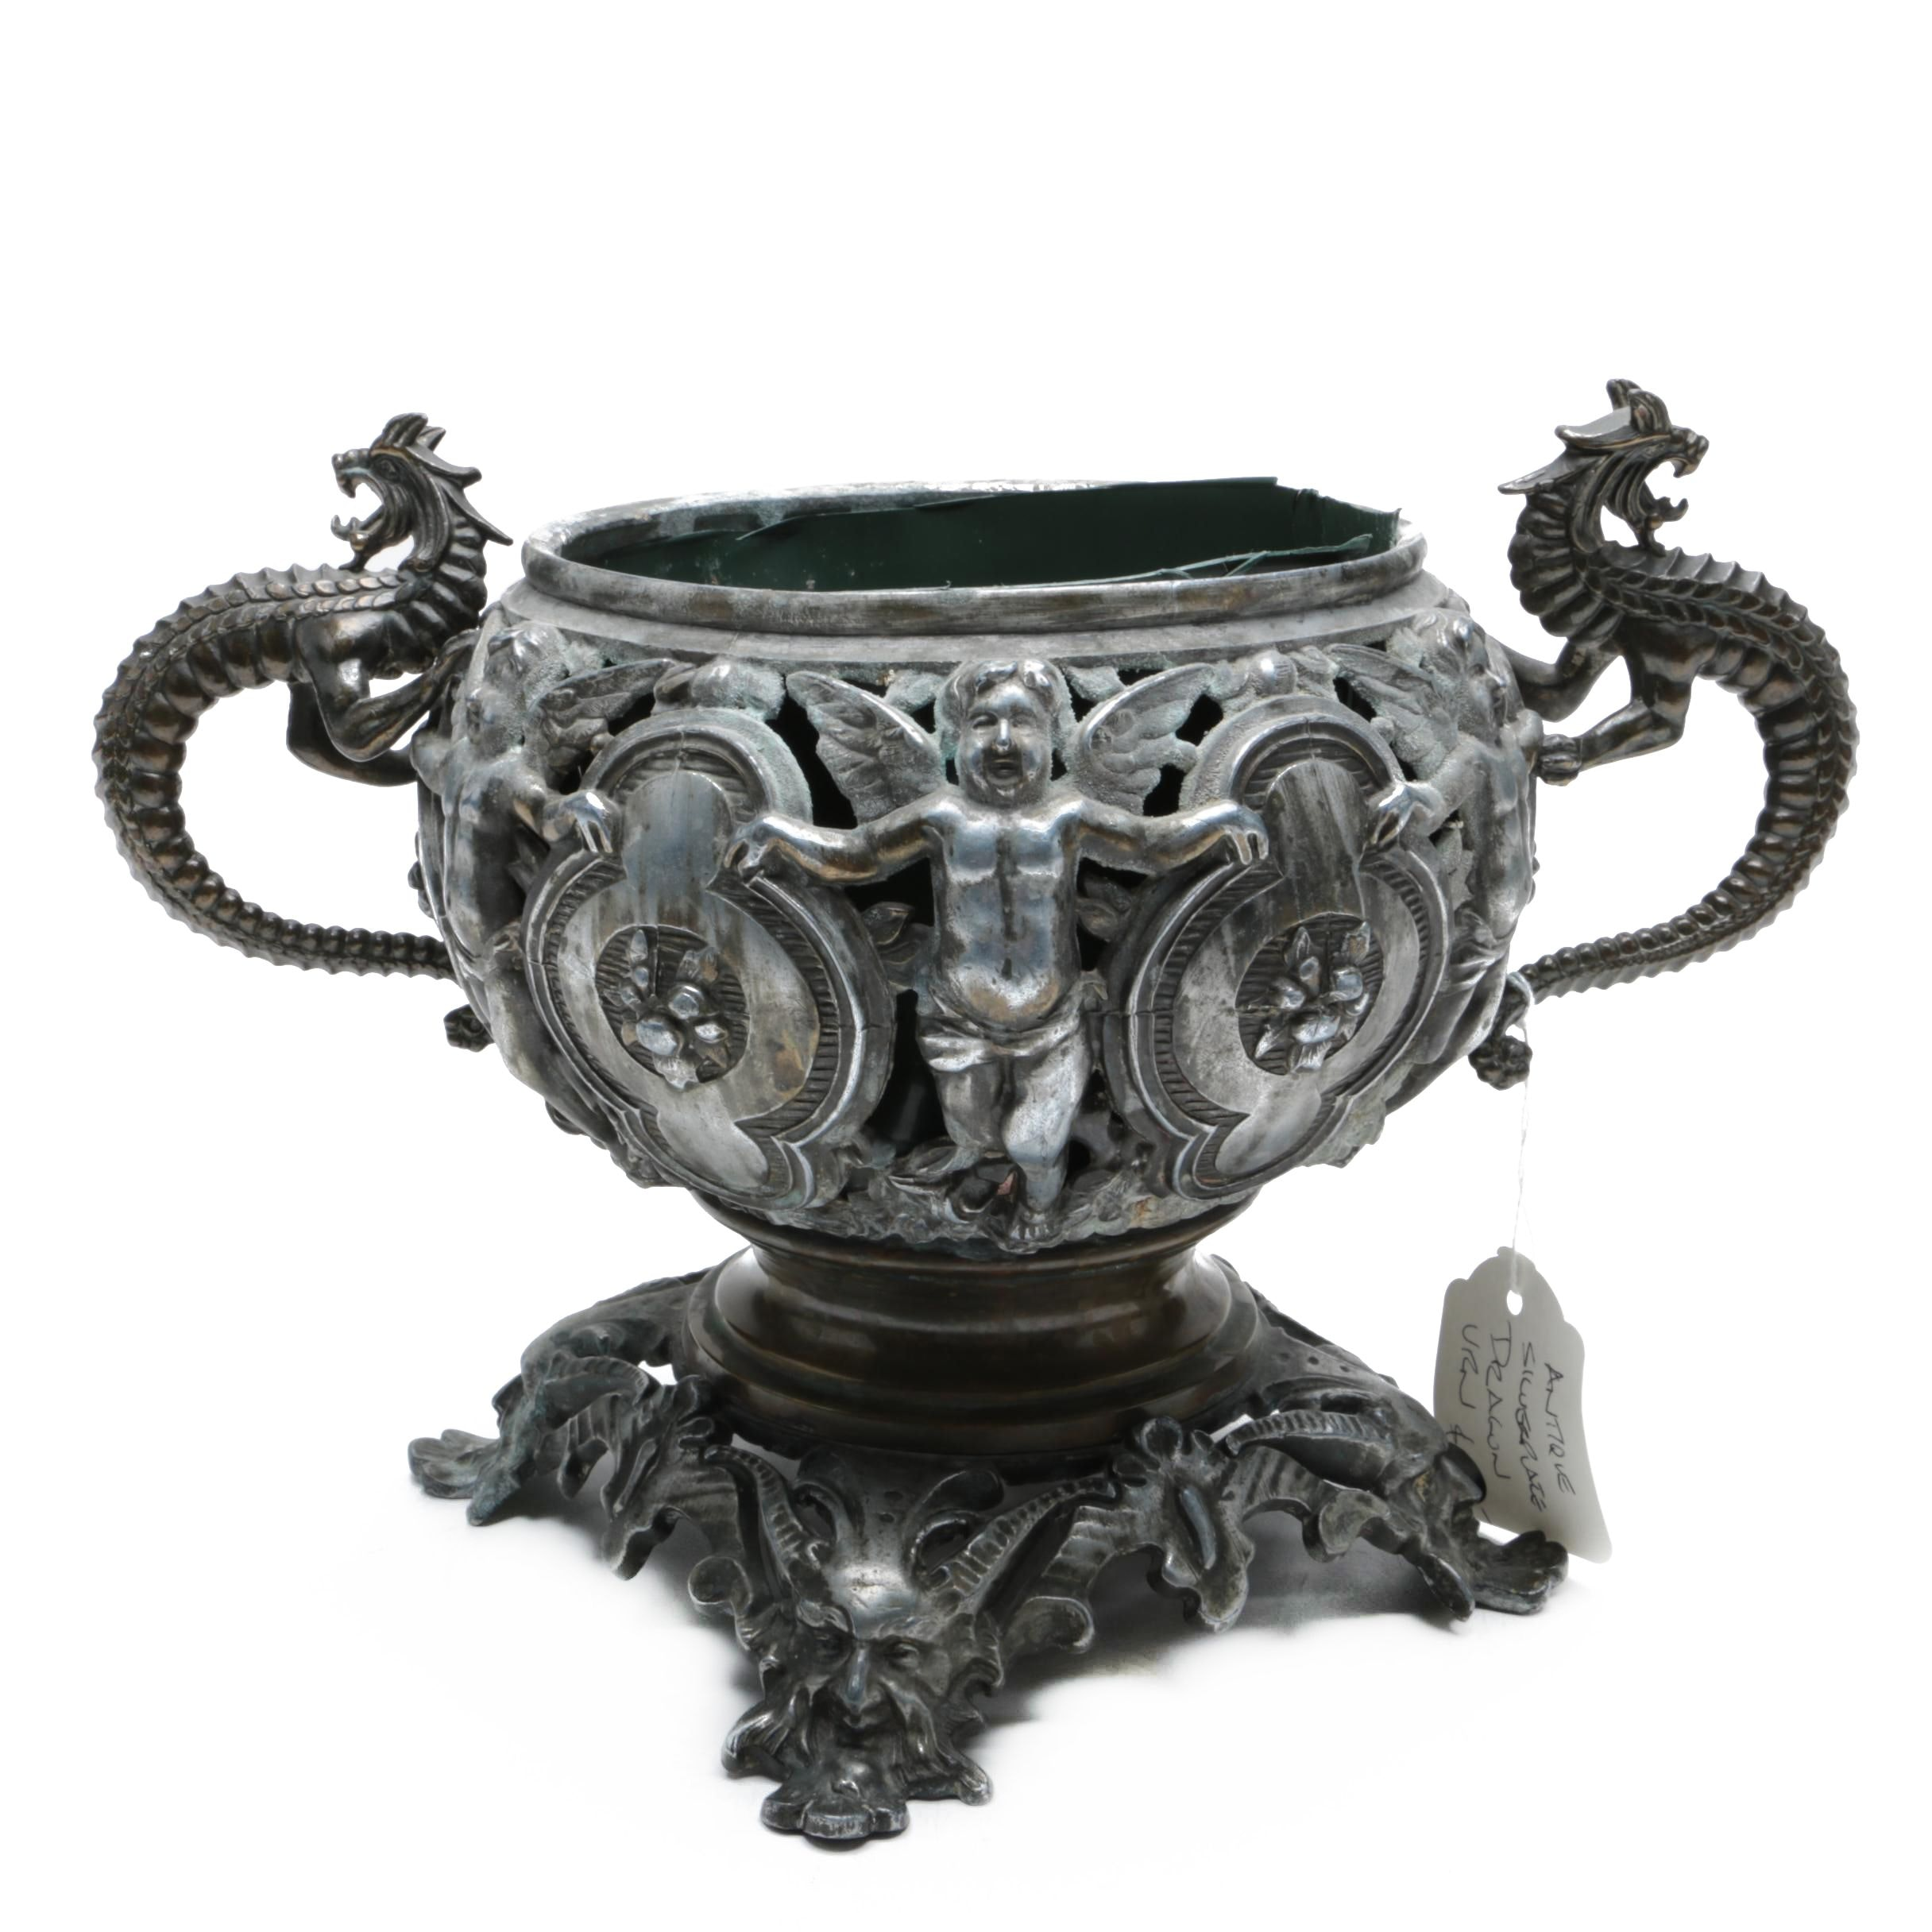 Vintage Silver-Plated Urn Console Bowl with Dragon Handles